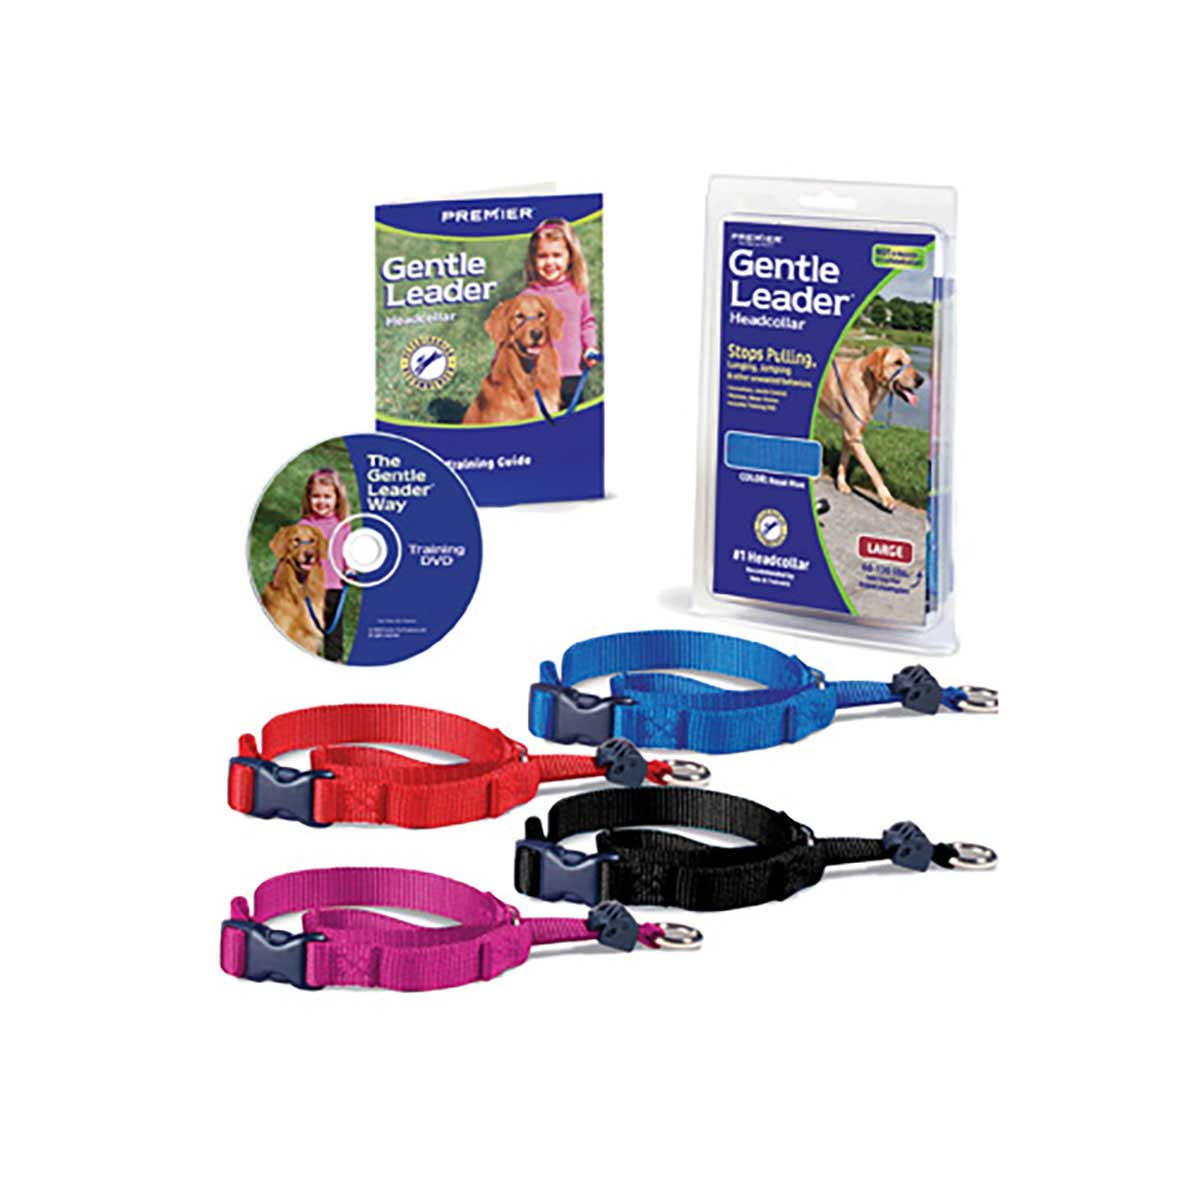 Gentle Leader Quick Release Head Collar Small for Dogs less than 25 lbs